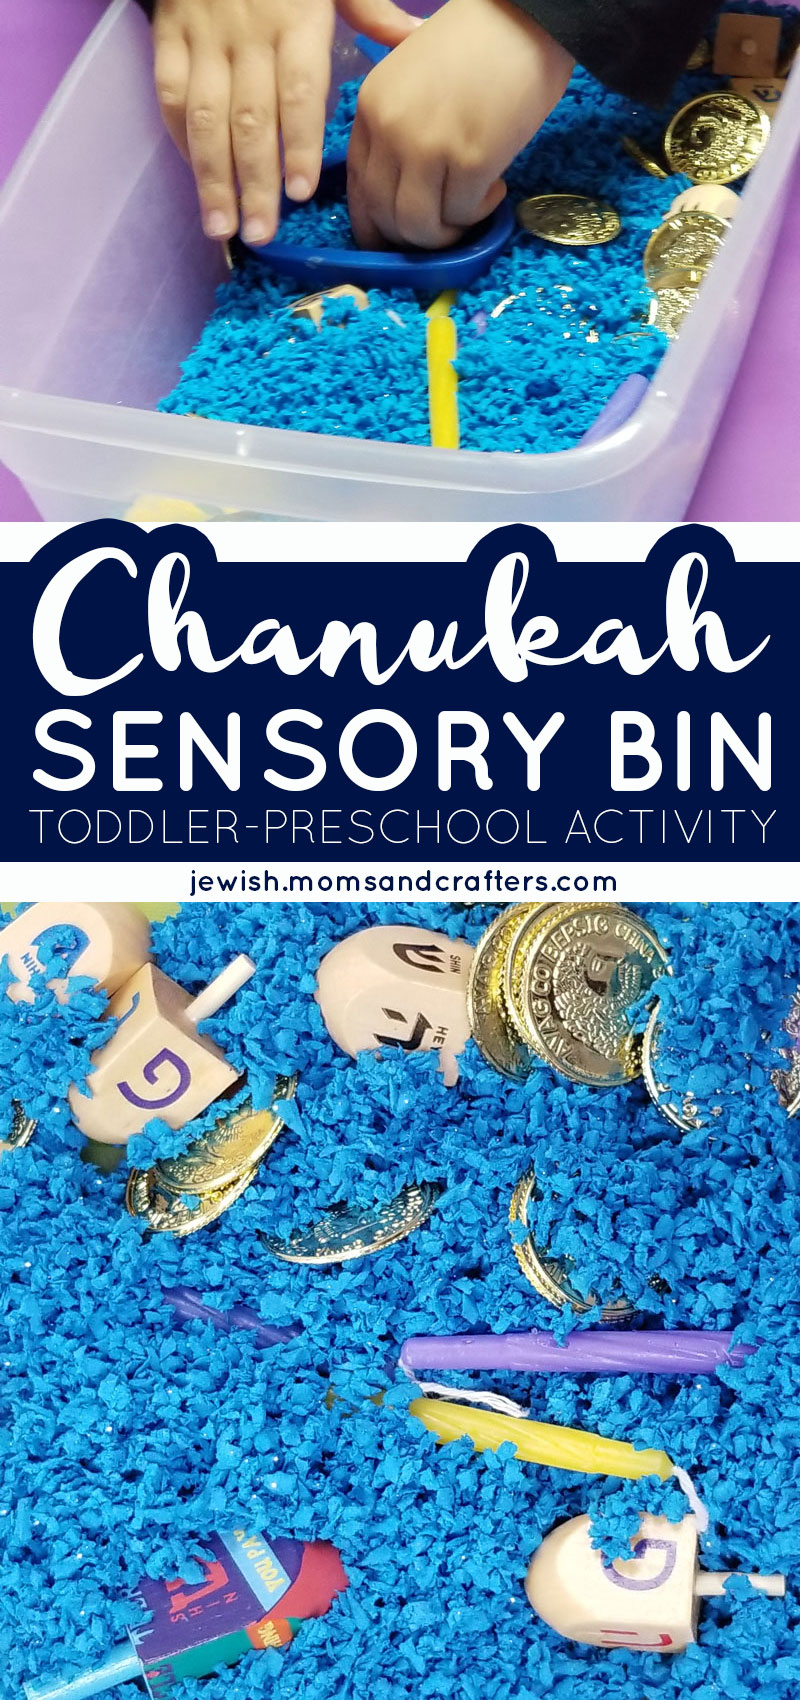 Click for one of my favorite preschool activities for Hanukkah - a unique Chanukah sensory bin! This is a fun toddler activity for two years old and up, featuring dreidels, candles, and more!